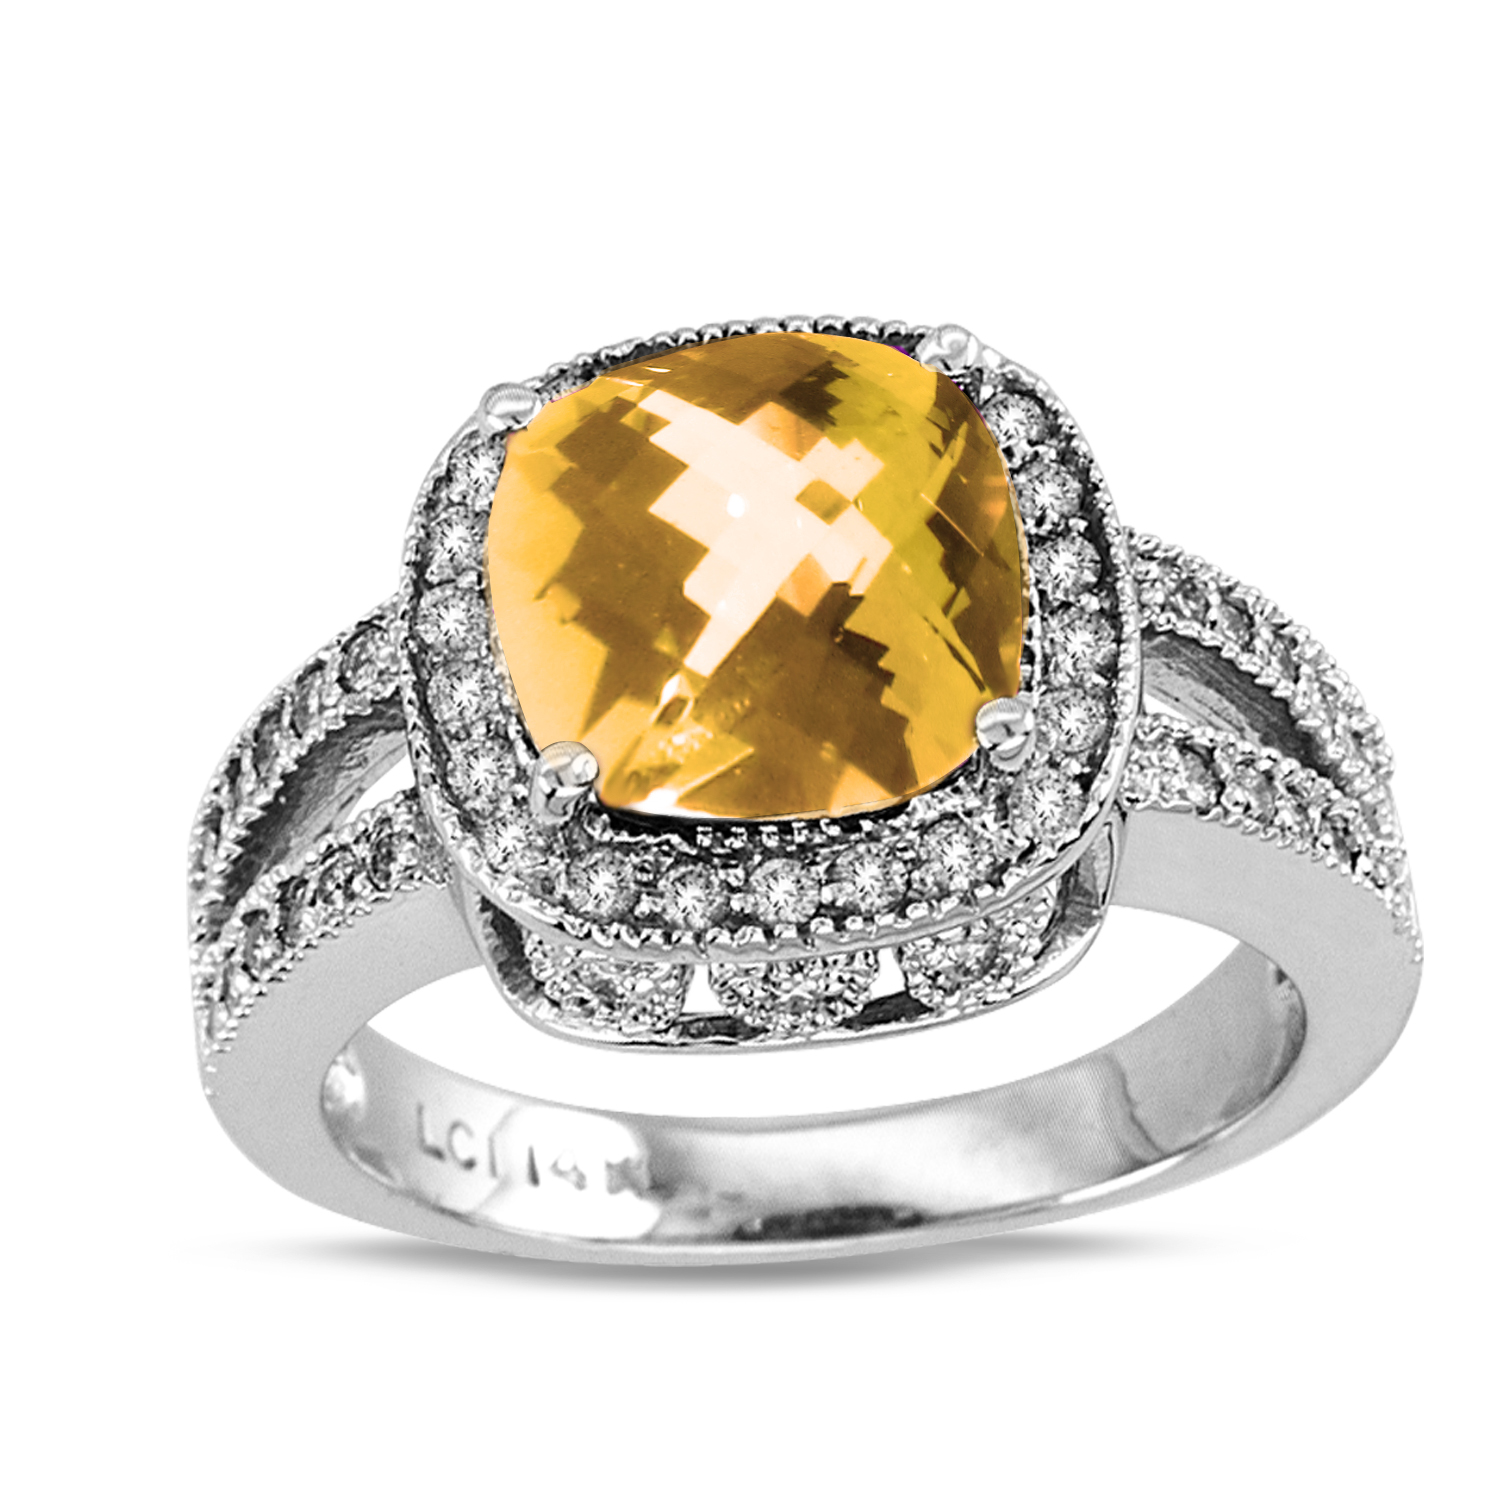 View 14k Gold Split Shank Ring with 0.50ct tw of Round Diamonds and 9mm Cushion Checkerboard Cut Citrin Center Stone